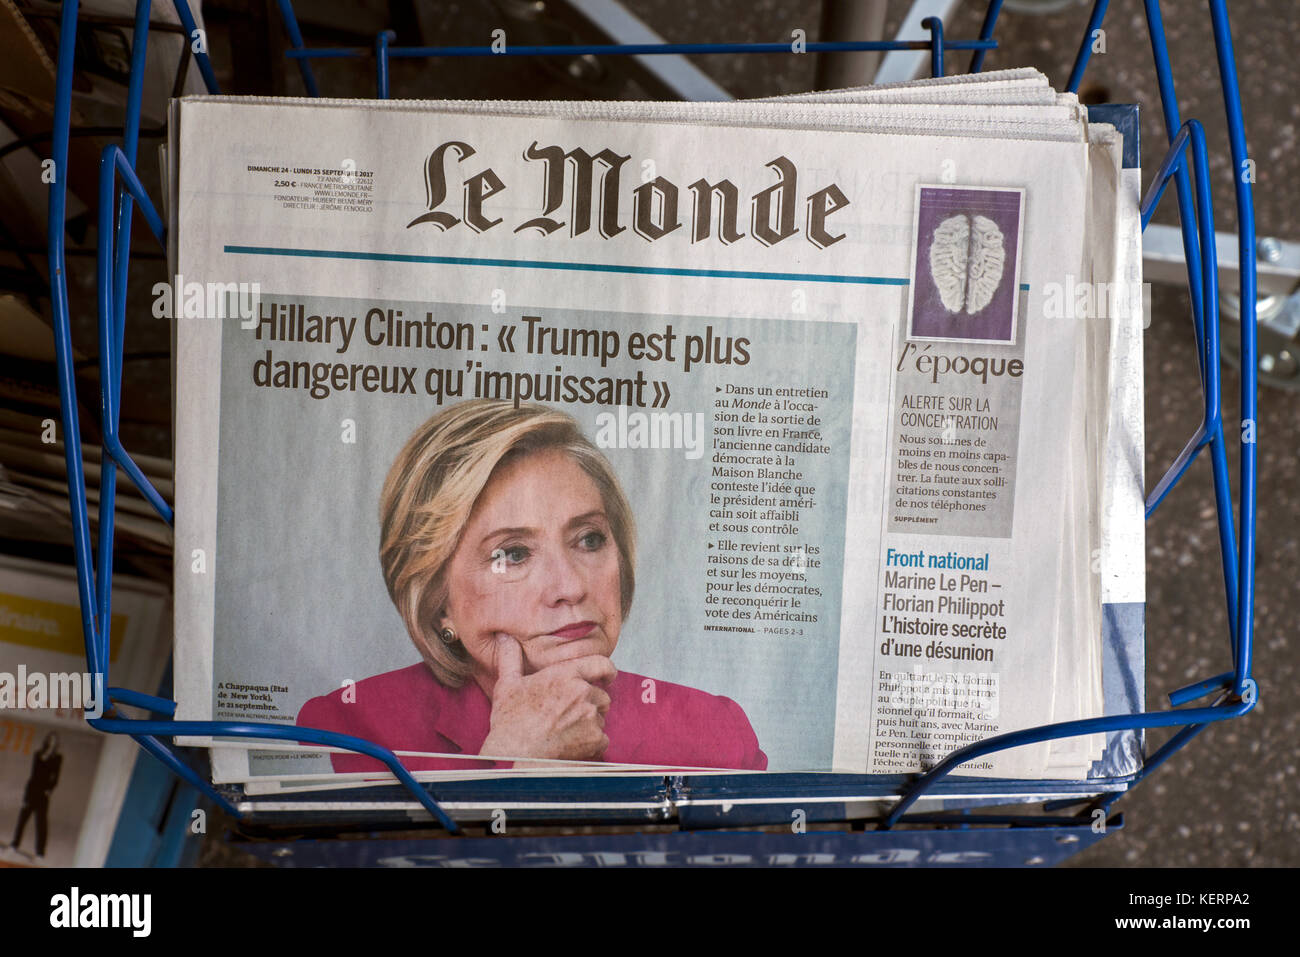 Hillary Clinton on the cover of the French daily newspaper, Le Monde. - Stock Image